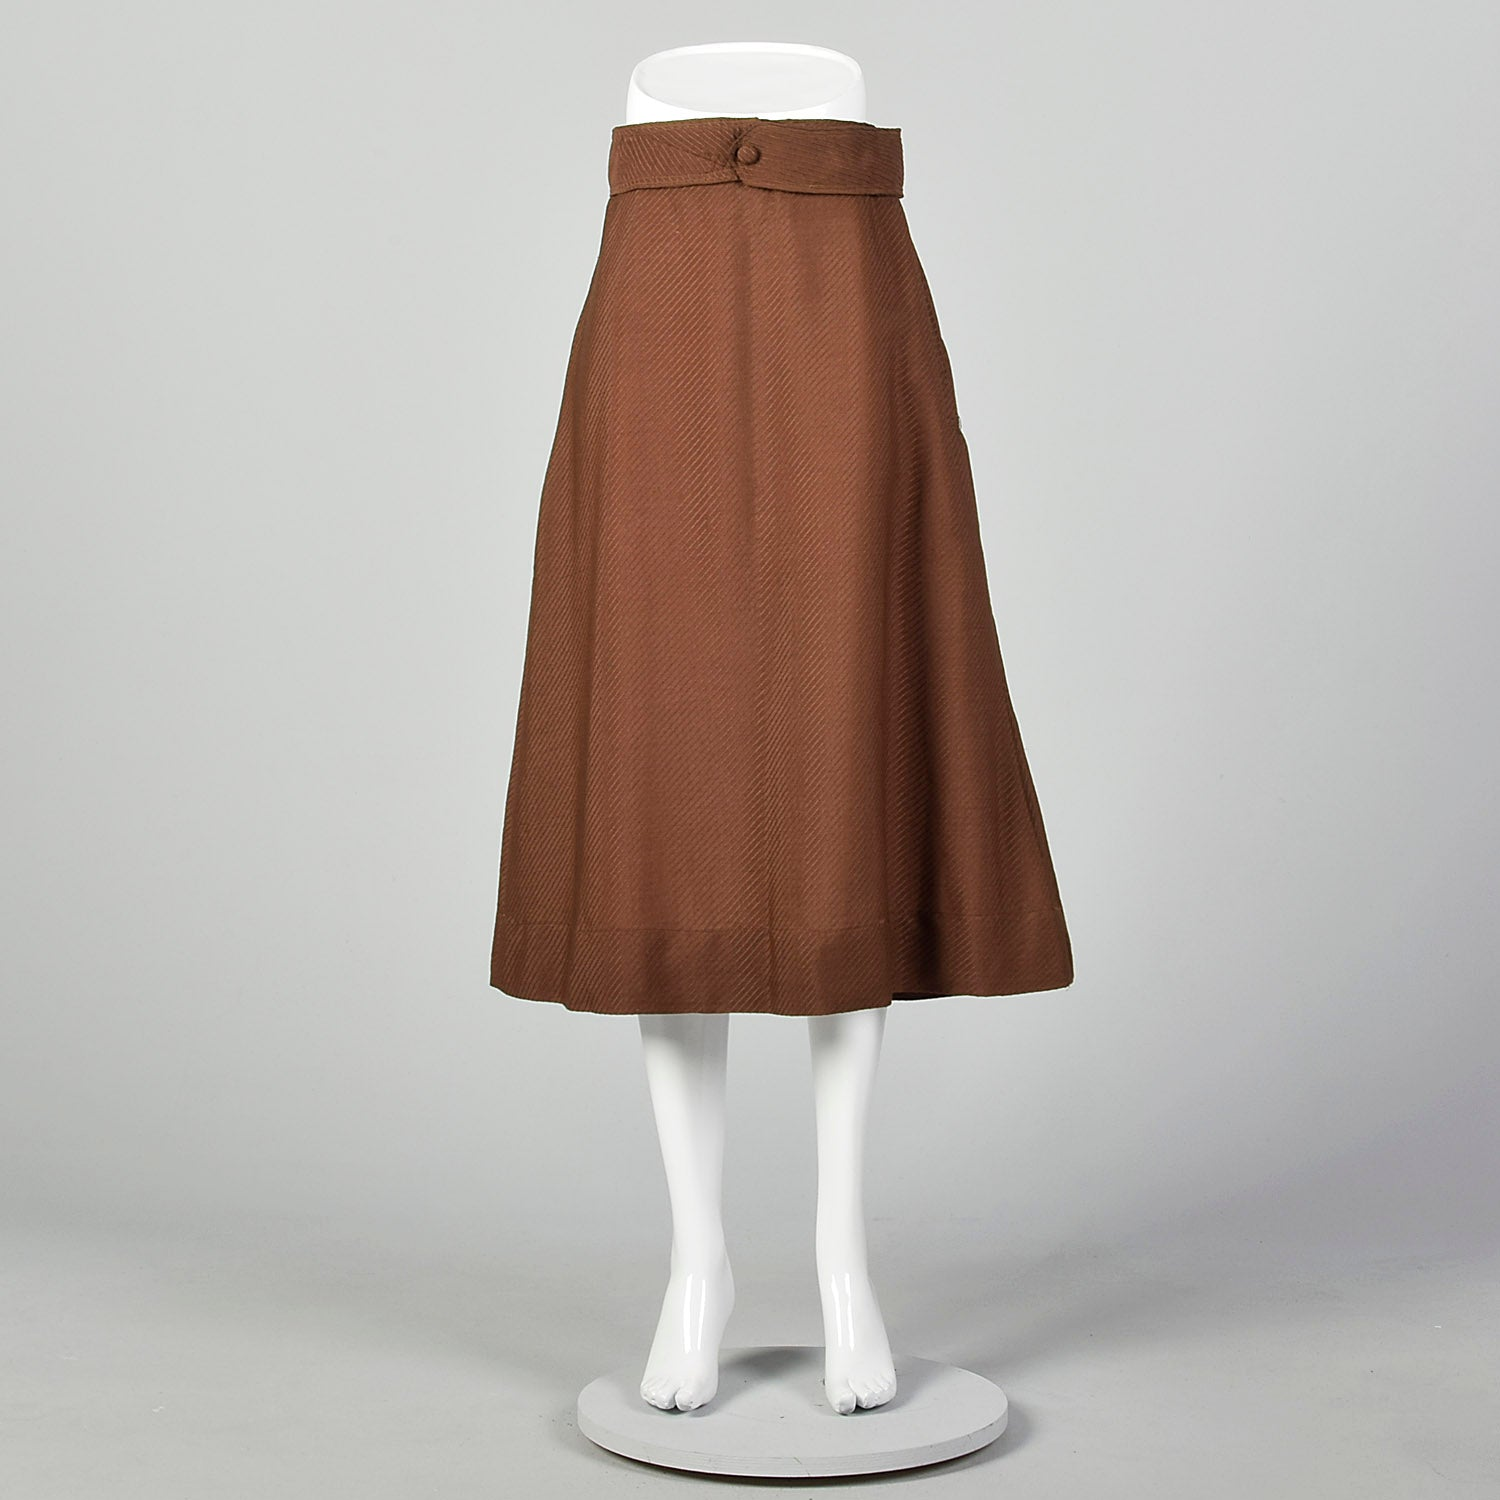 Medium 1910s Edwardian Brown Lightweight Skirt